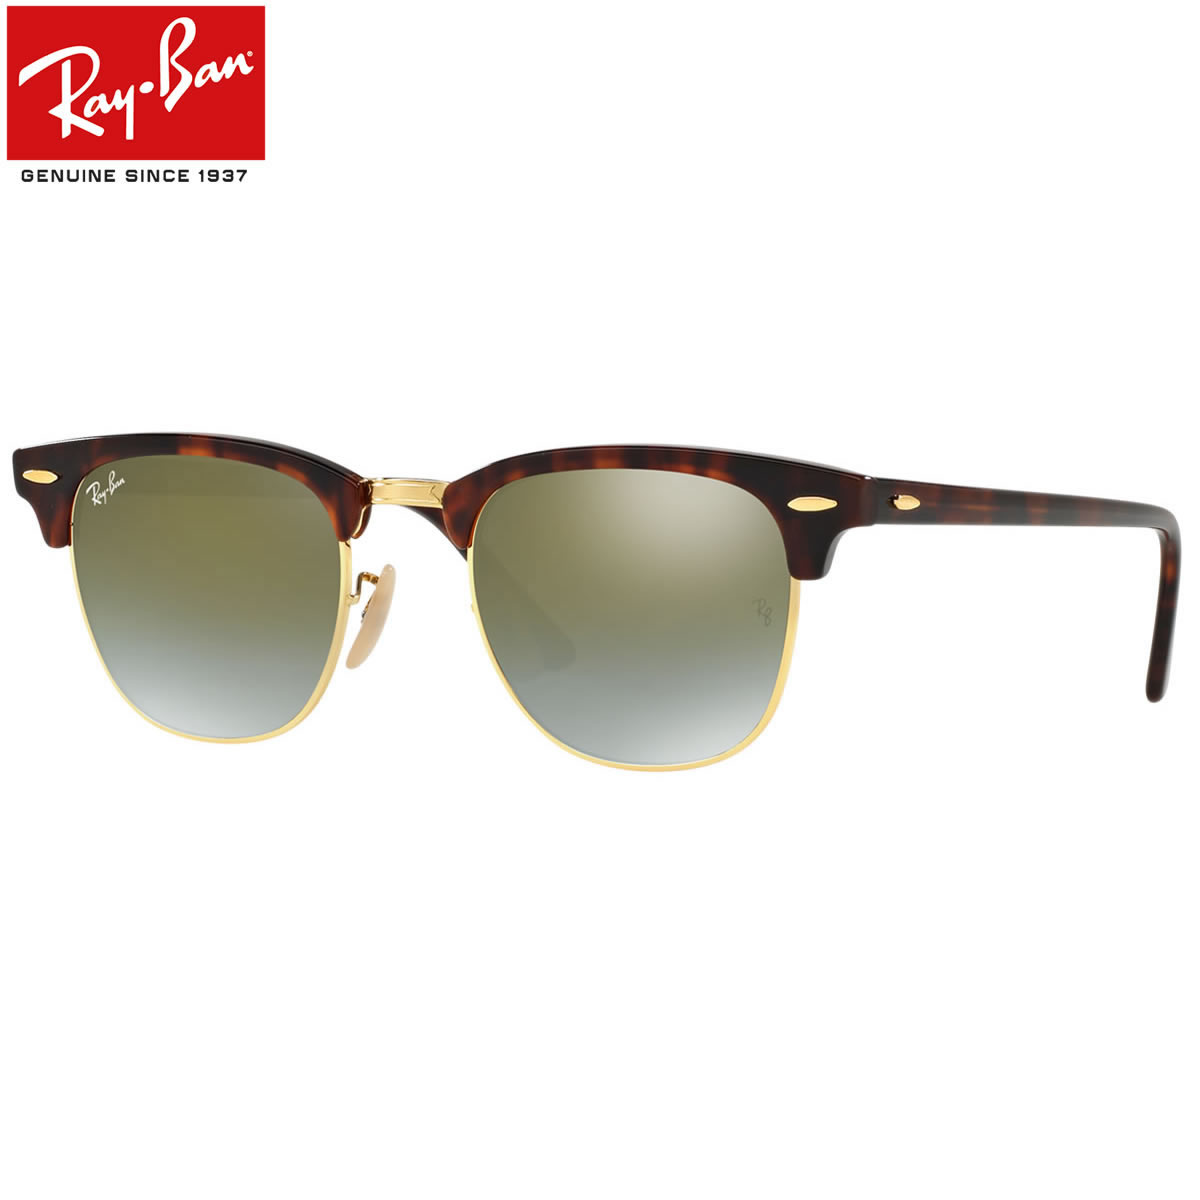 d3250e1d312 Optical Shop Thats  Ray-Ban Sunglasses RB3016 990 9J 51size ...